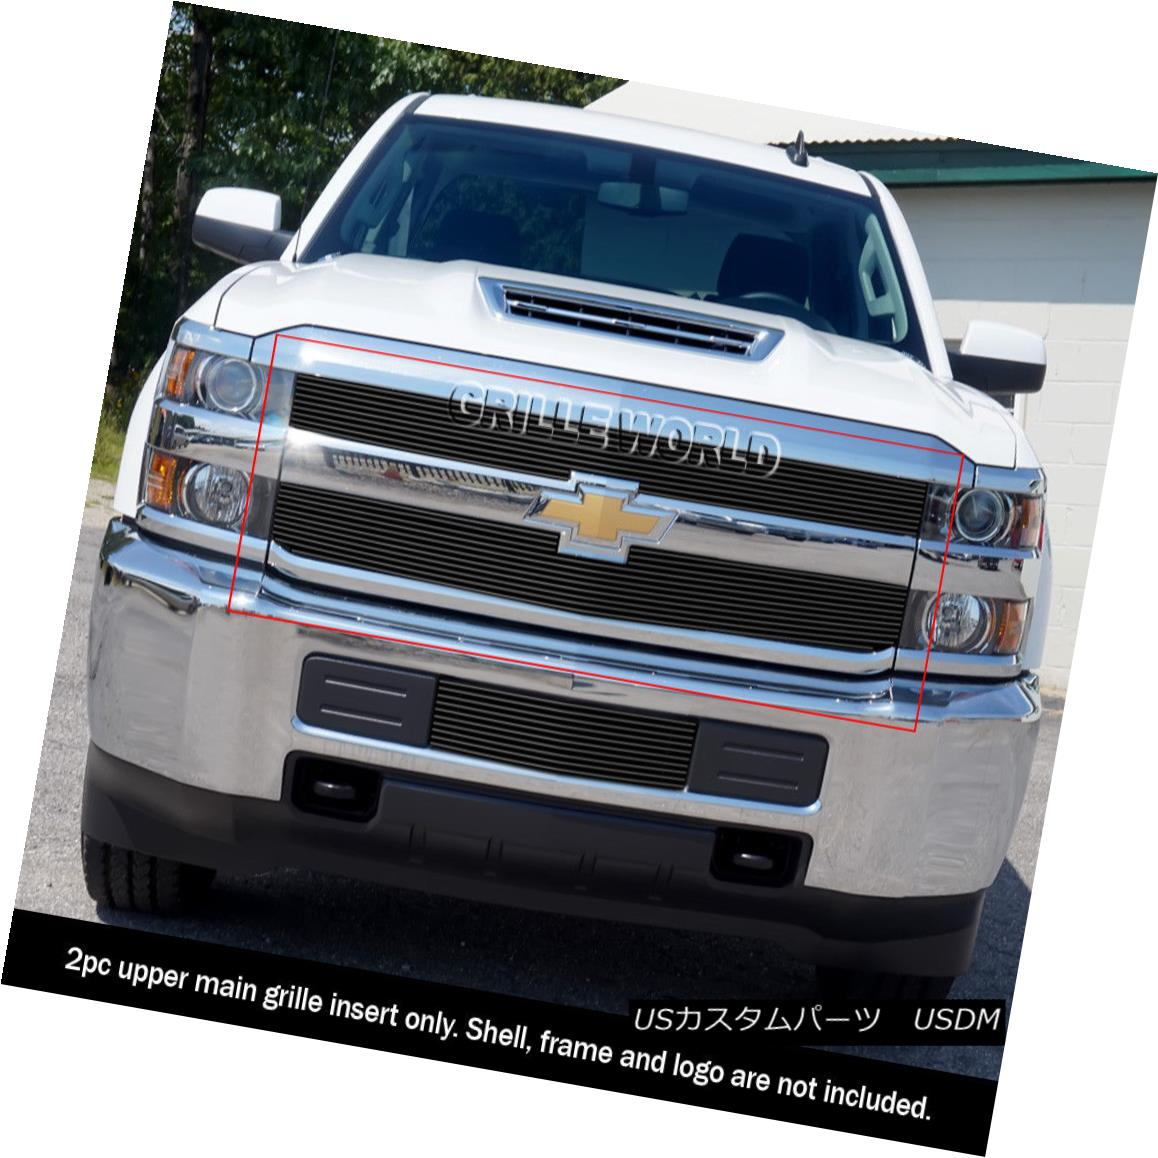 グリル Fits 2015-2018 Chevy Silverado 2500 HD/3500 HD Black Billet Grille Insert フィット2015-2018 Chevy Silverado 2500 HD / 3500 HDブラックビレットグリルインサート